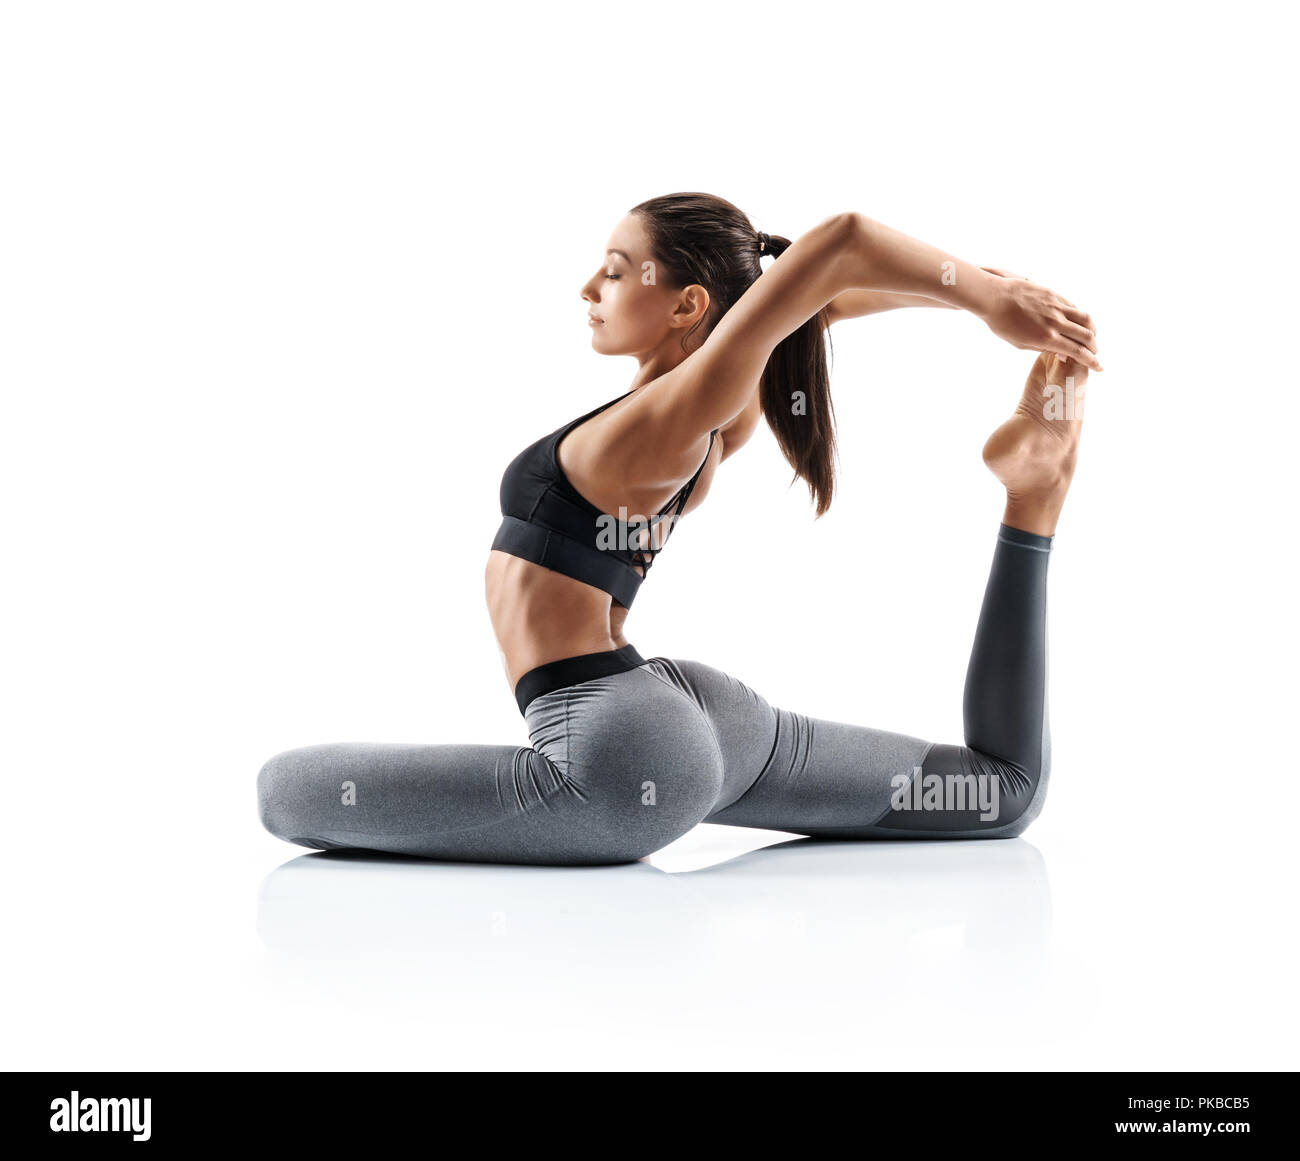 Sporty Young Woman Doing Yoga Practice Isolated On White Background Concept Of Healthy Life And Natural Balance Between Body And Mental Development Stock Photo Alamy